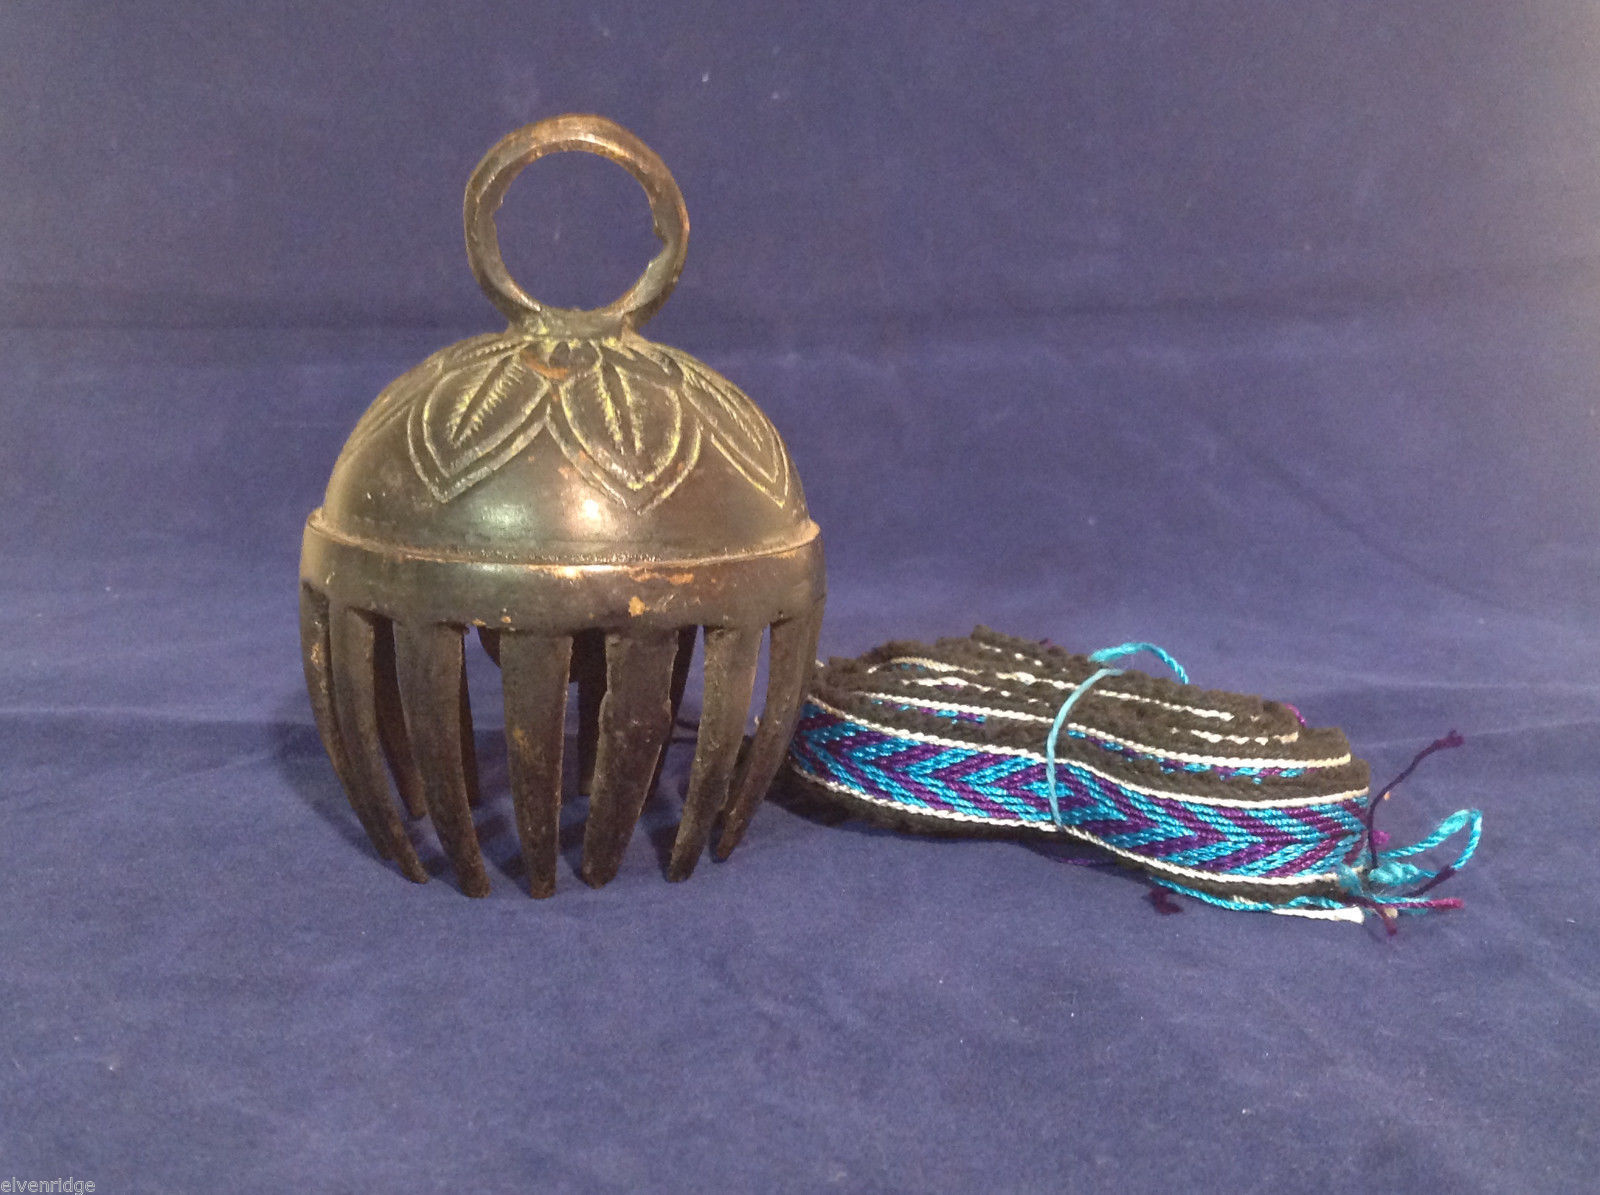 "Large Ornate Tibetan Cowbell Cow Bell w/ Colorful Hand-Woven Strap #2 4.5"" x 3"""